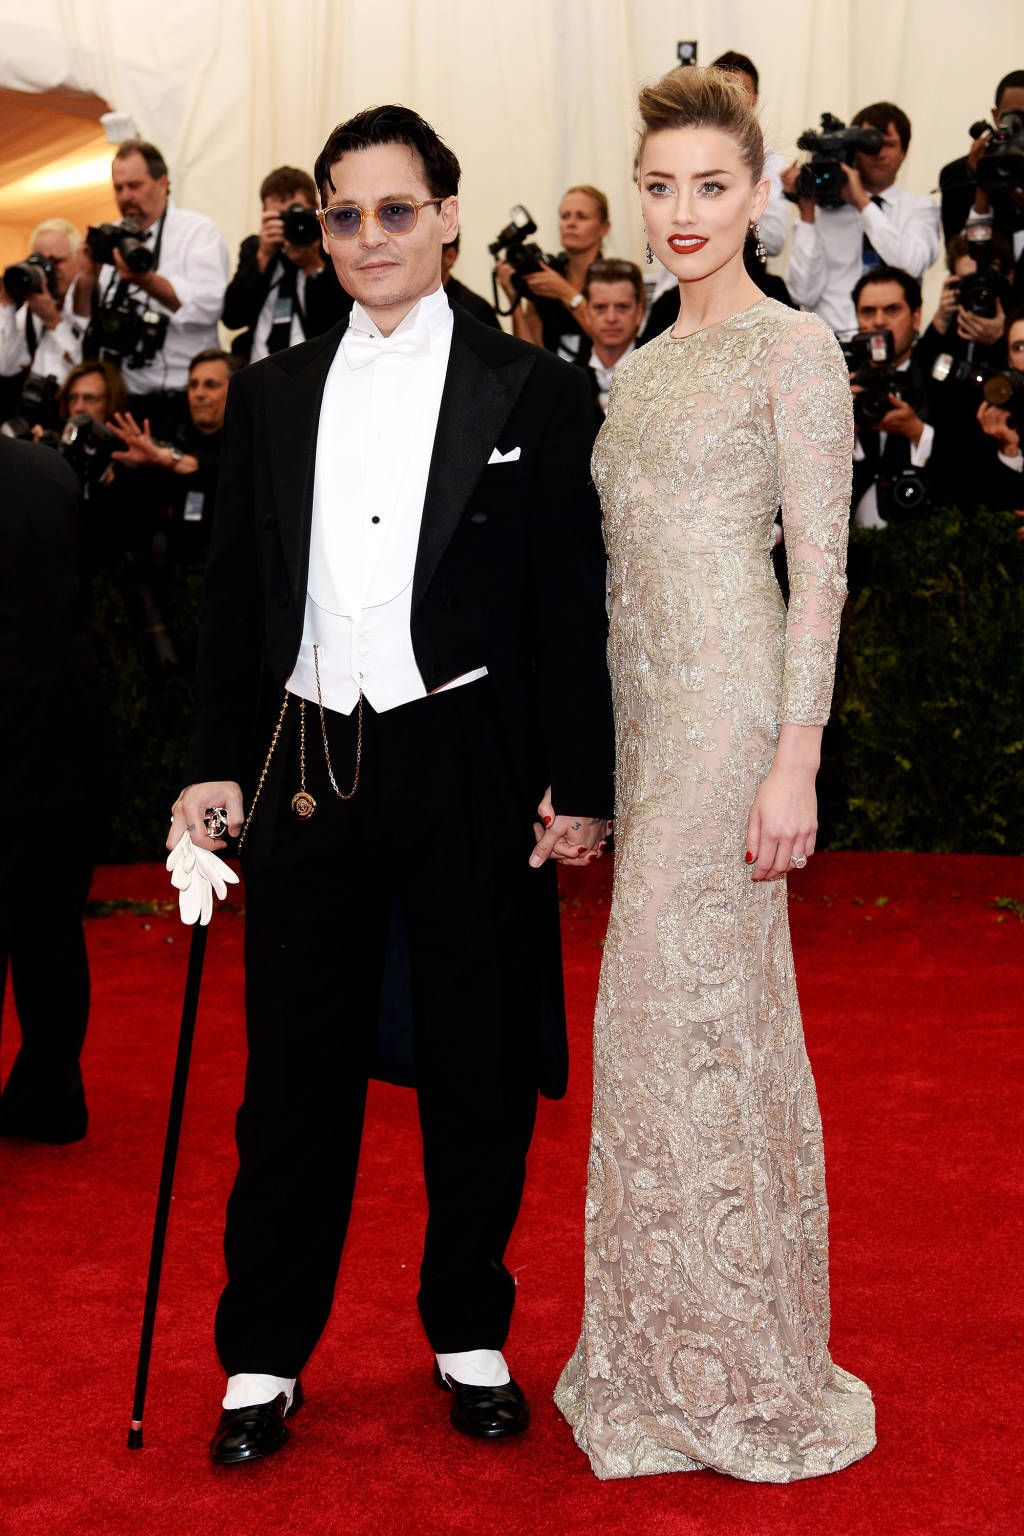 Premiere Roter Teppich The 23 Chicest Couples At The Met Gala 2014 Celebrities Roter